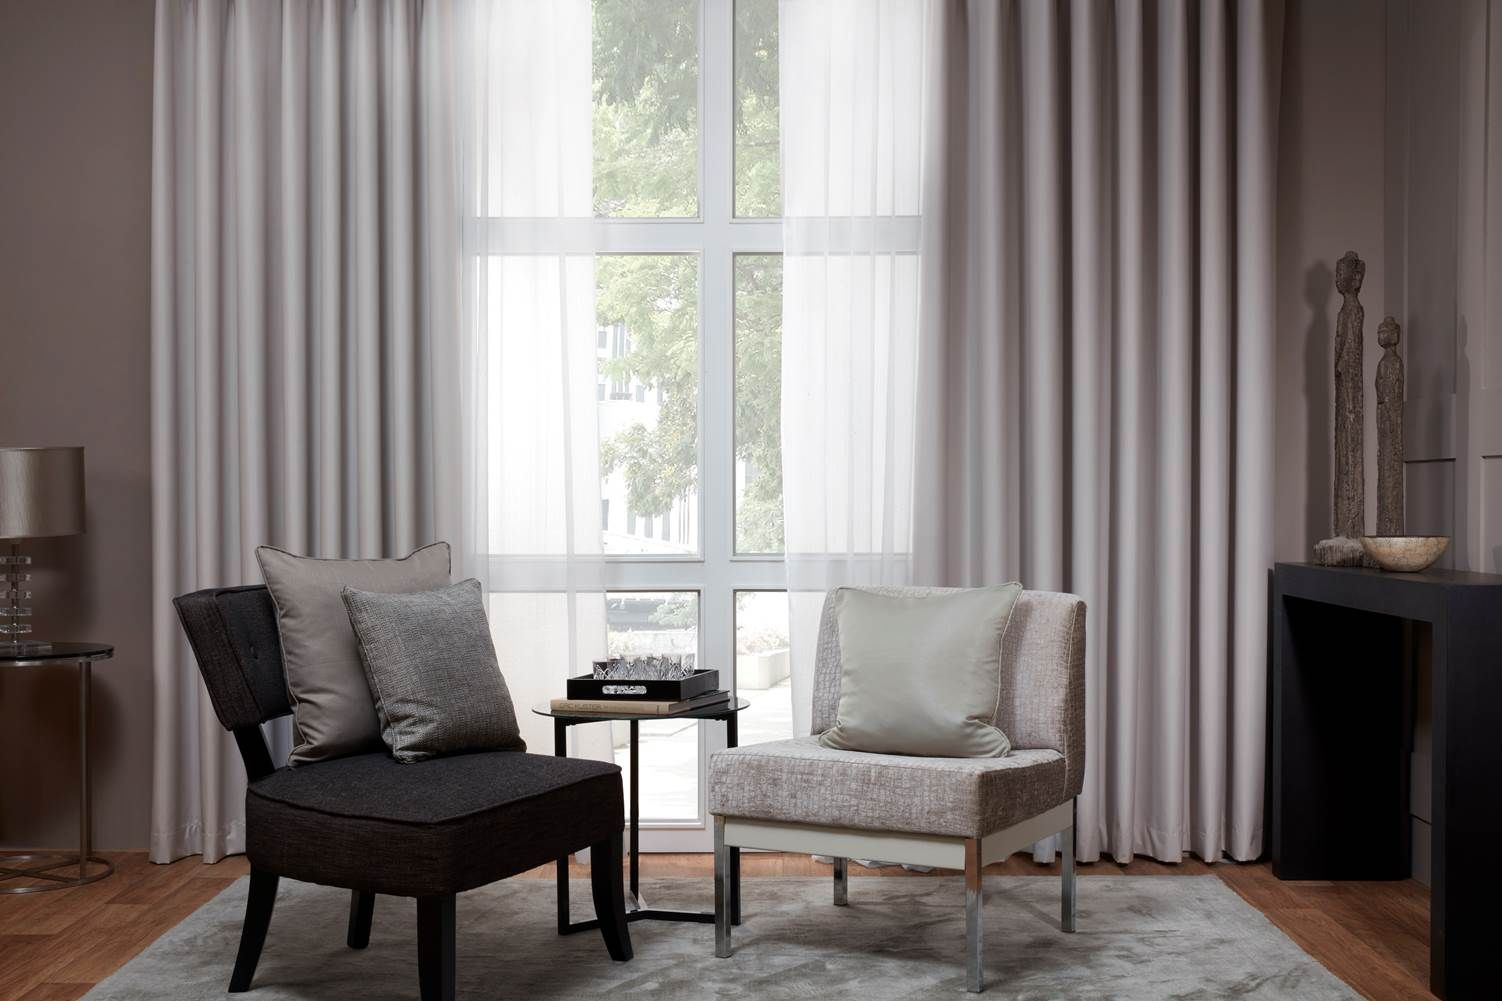 Best Blackout Curtains Reviews and Buying Guide by www.snoremagazine.com